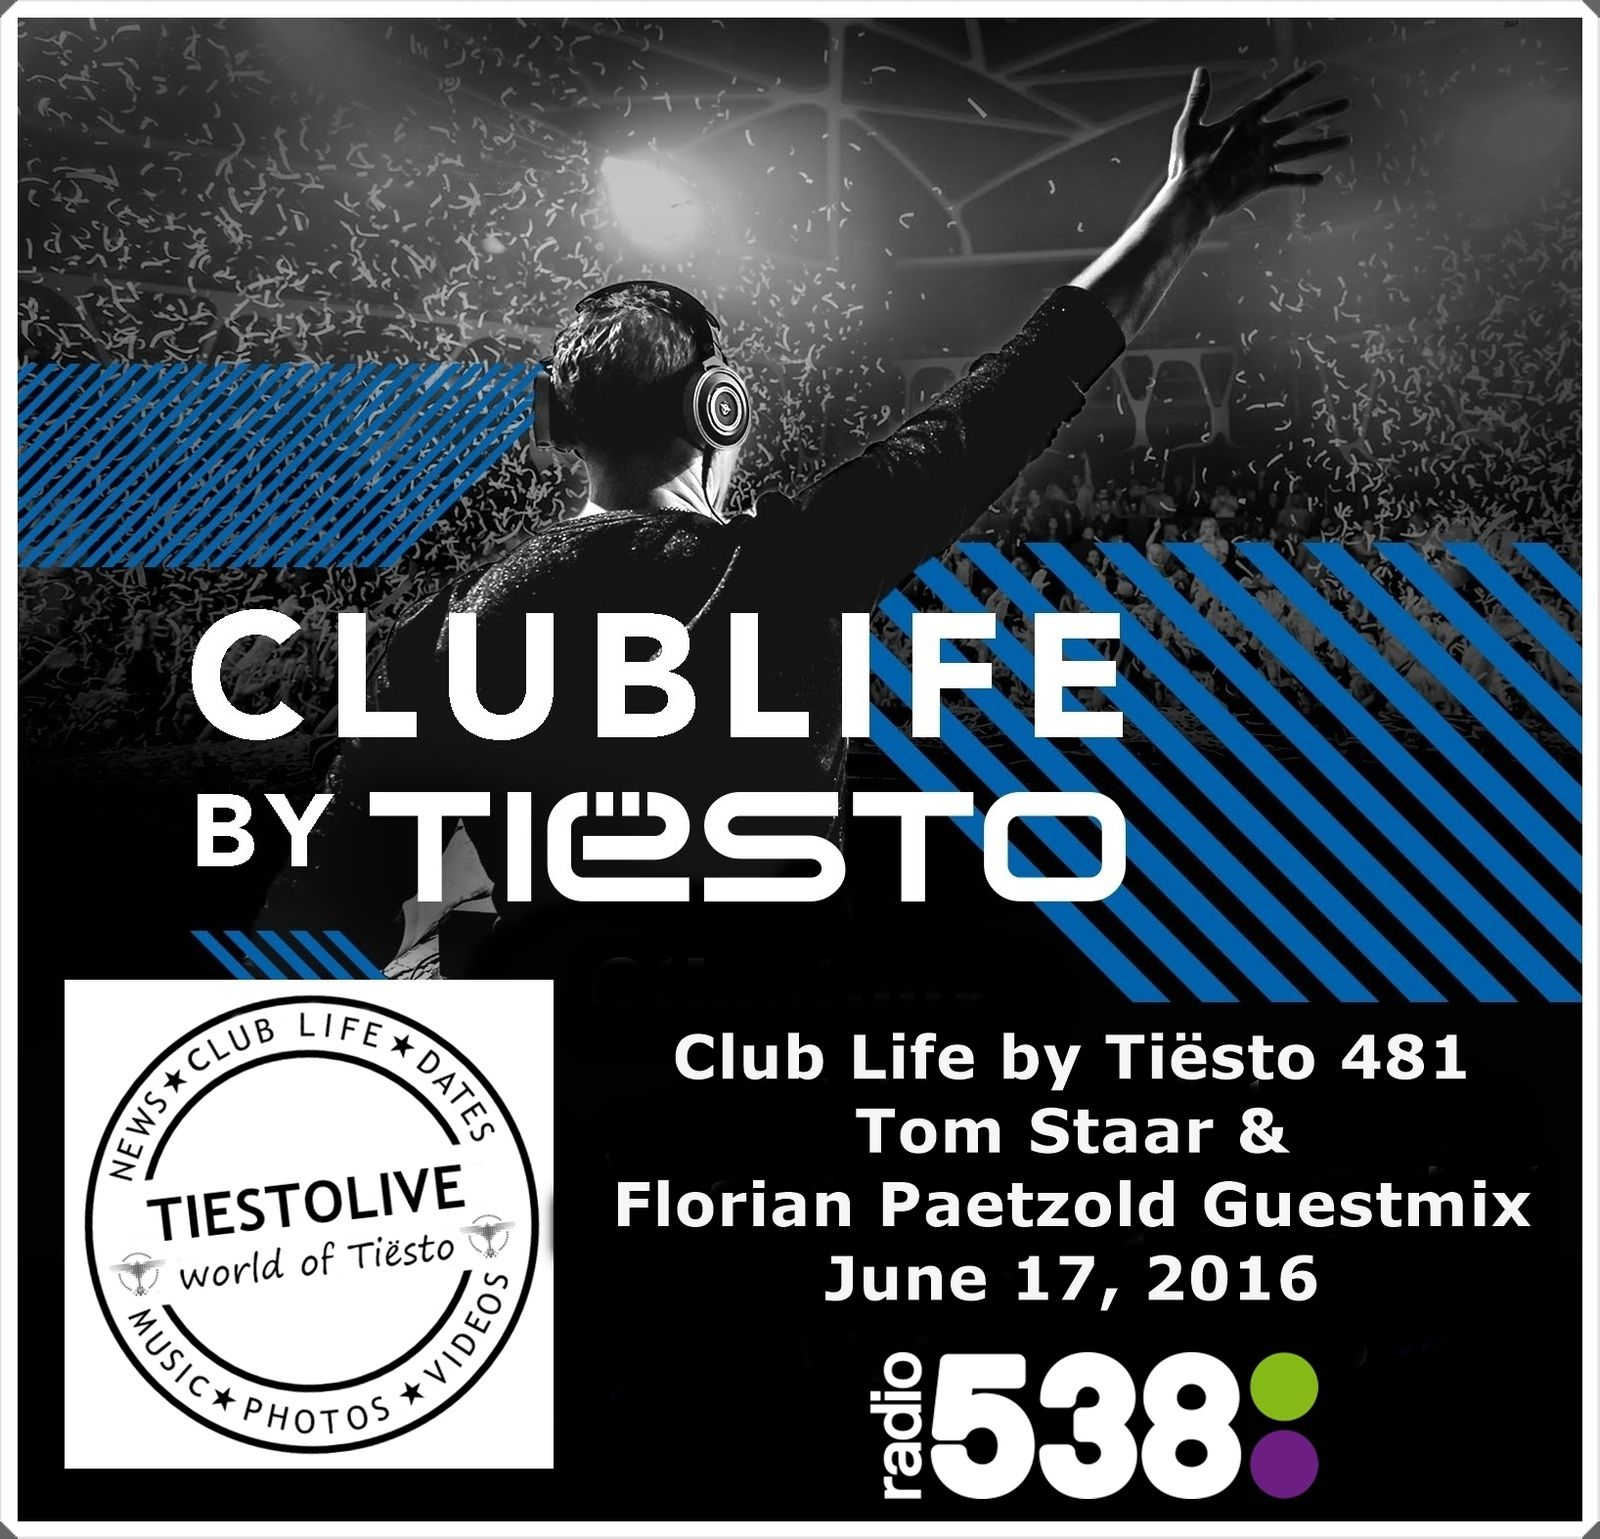 Club Life by Tiësto 481 - Tom Staar &amp&#x3B; Florian Paetzold Guestmix - June 17, 2016